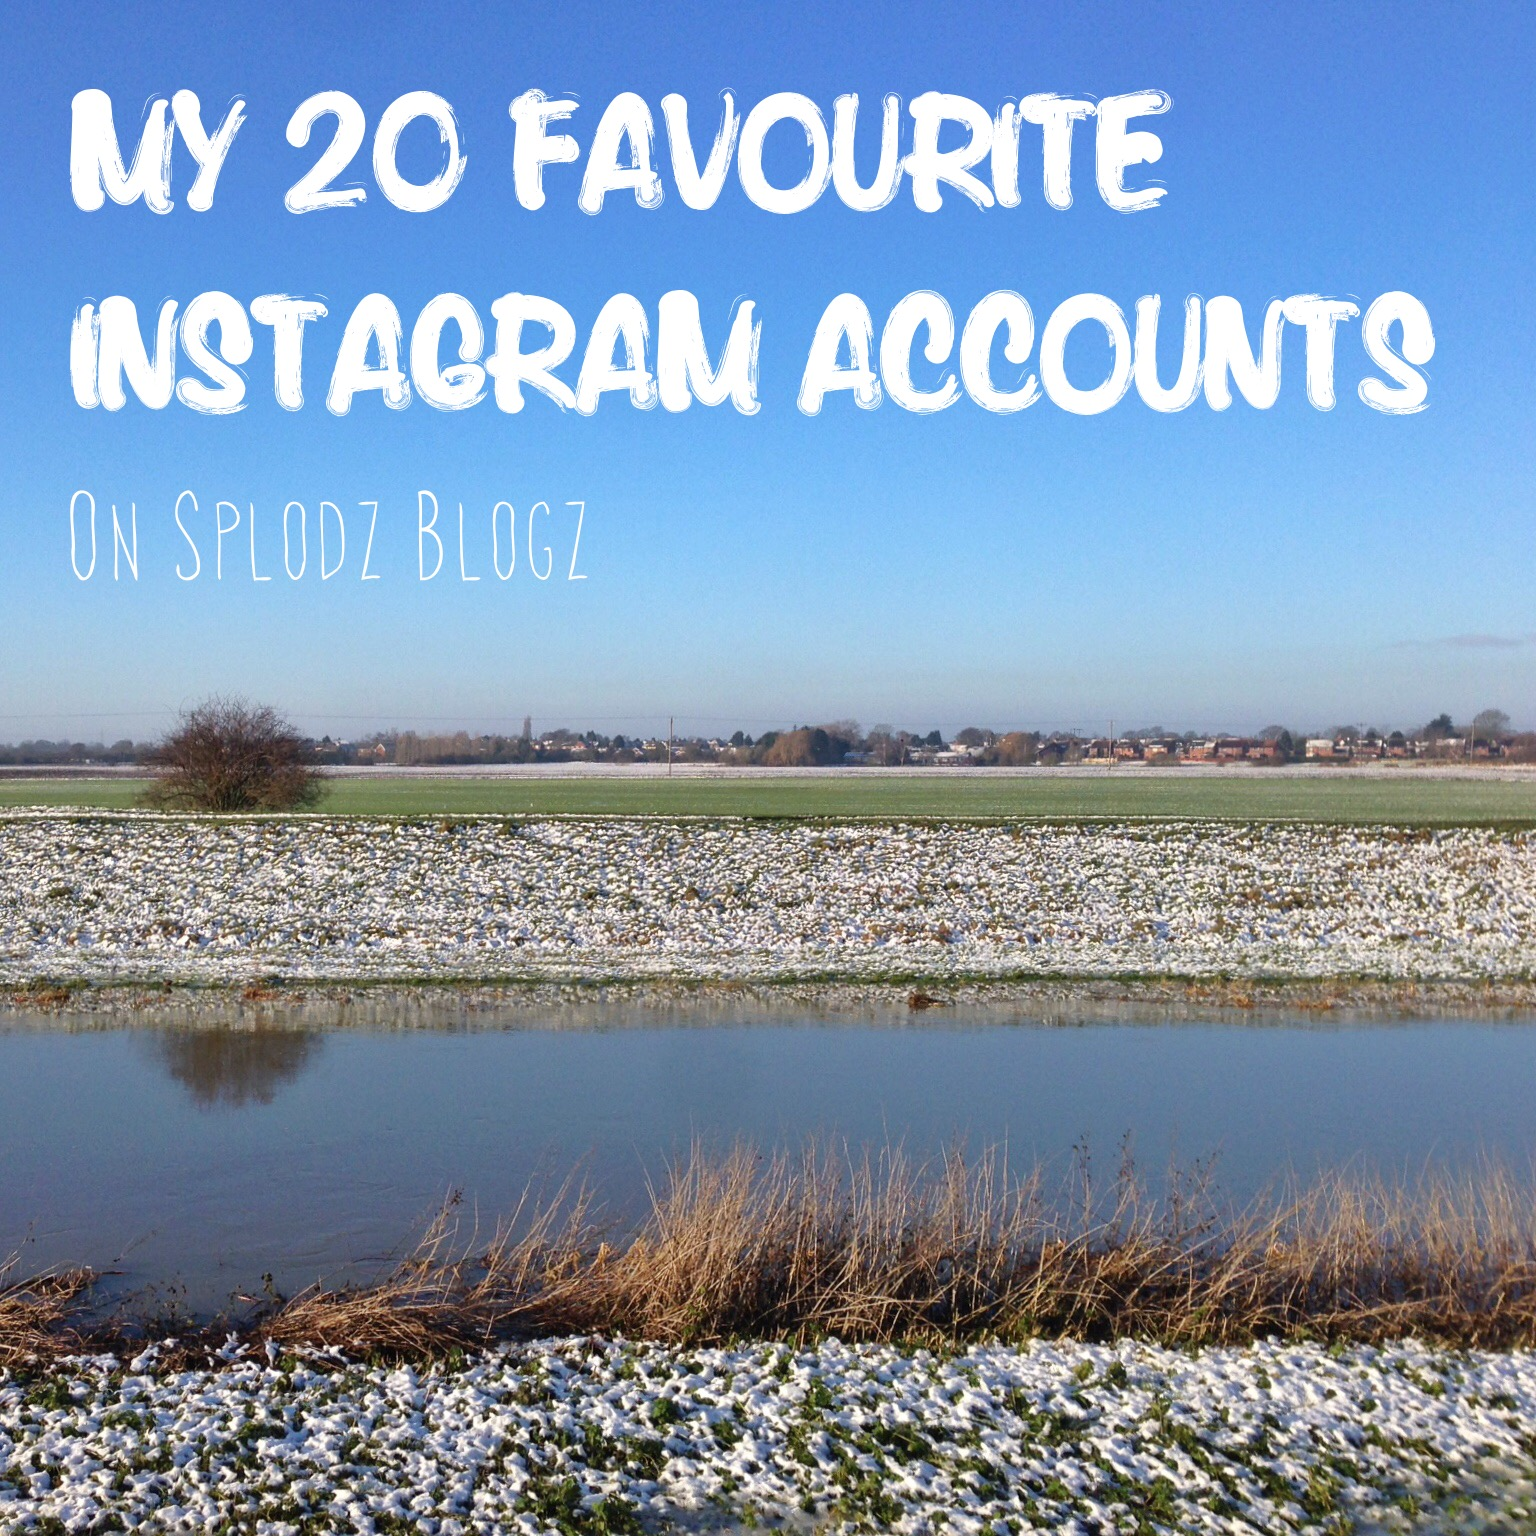 My 20 Favourite Instagram Accounts